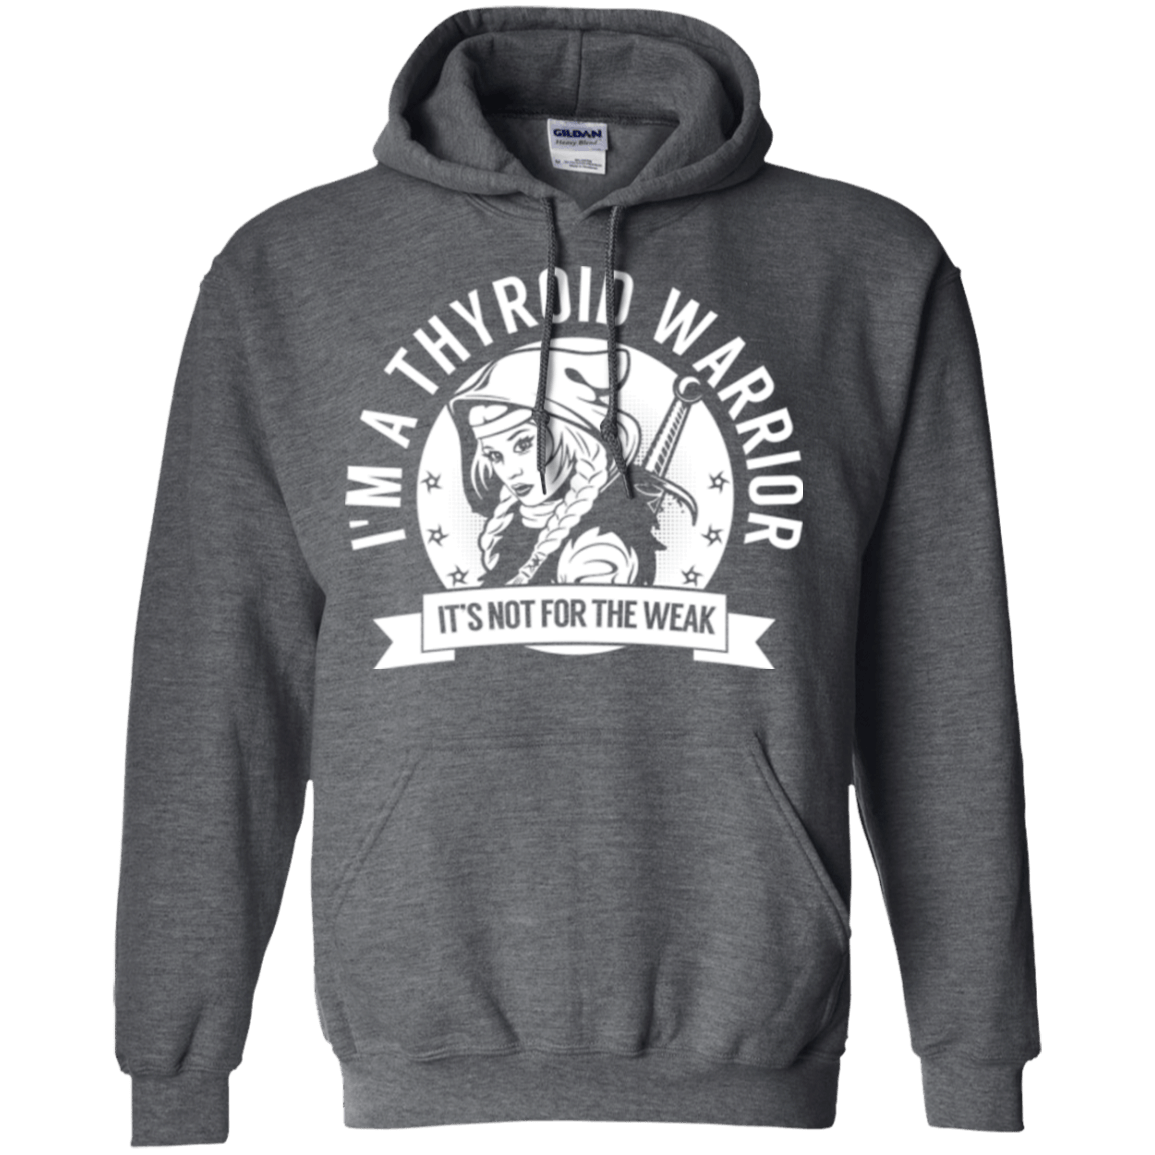 Sweatshirts - Thyroid Disease - Thyroid Warrior Hooded Pullover Hoodie 8 Oz.